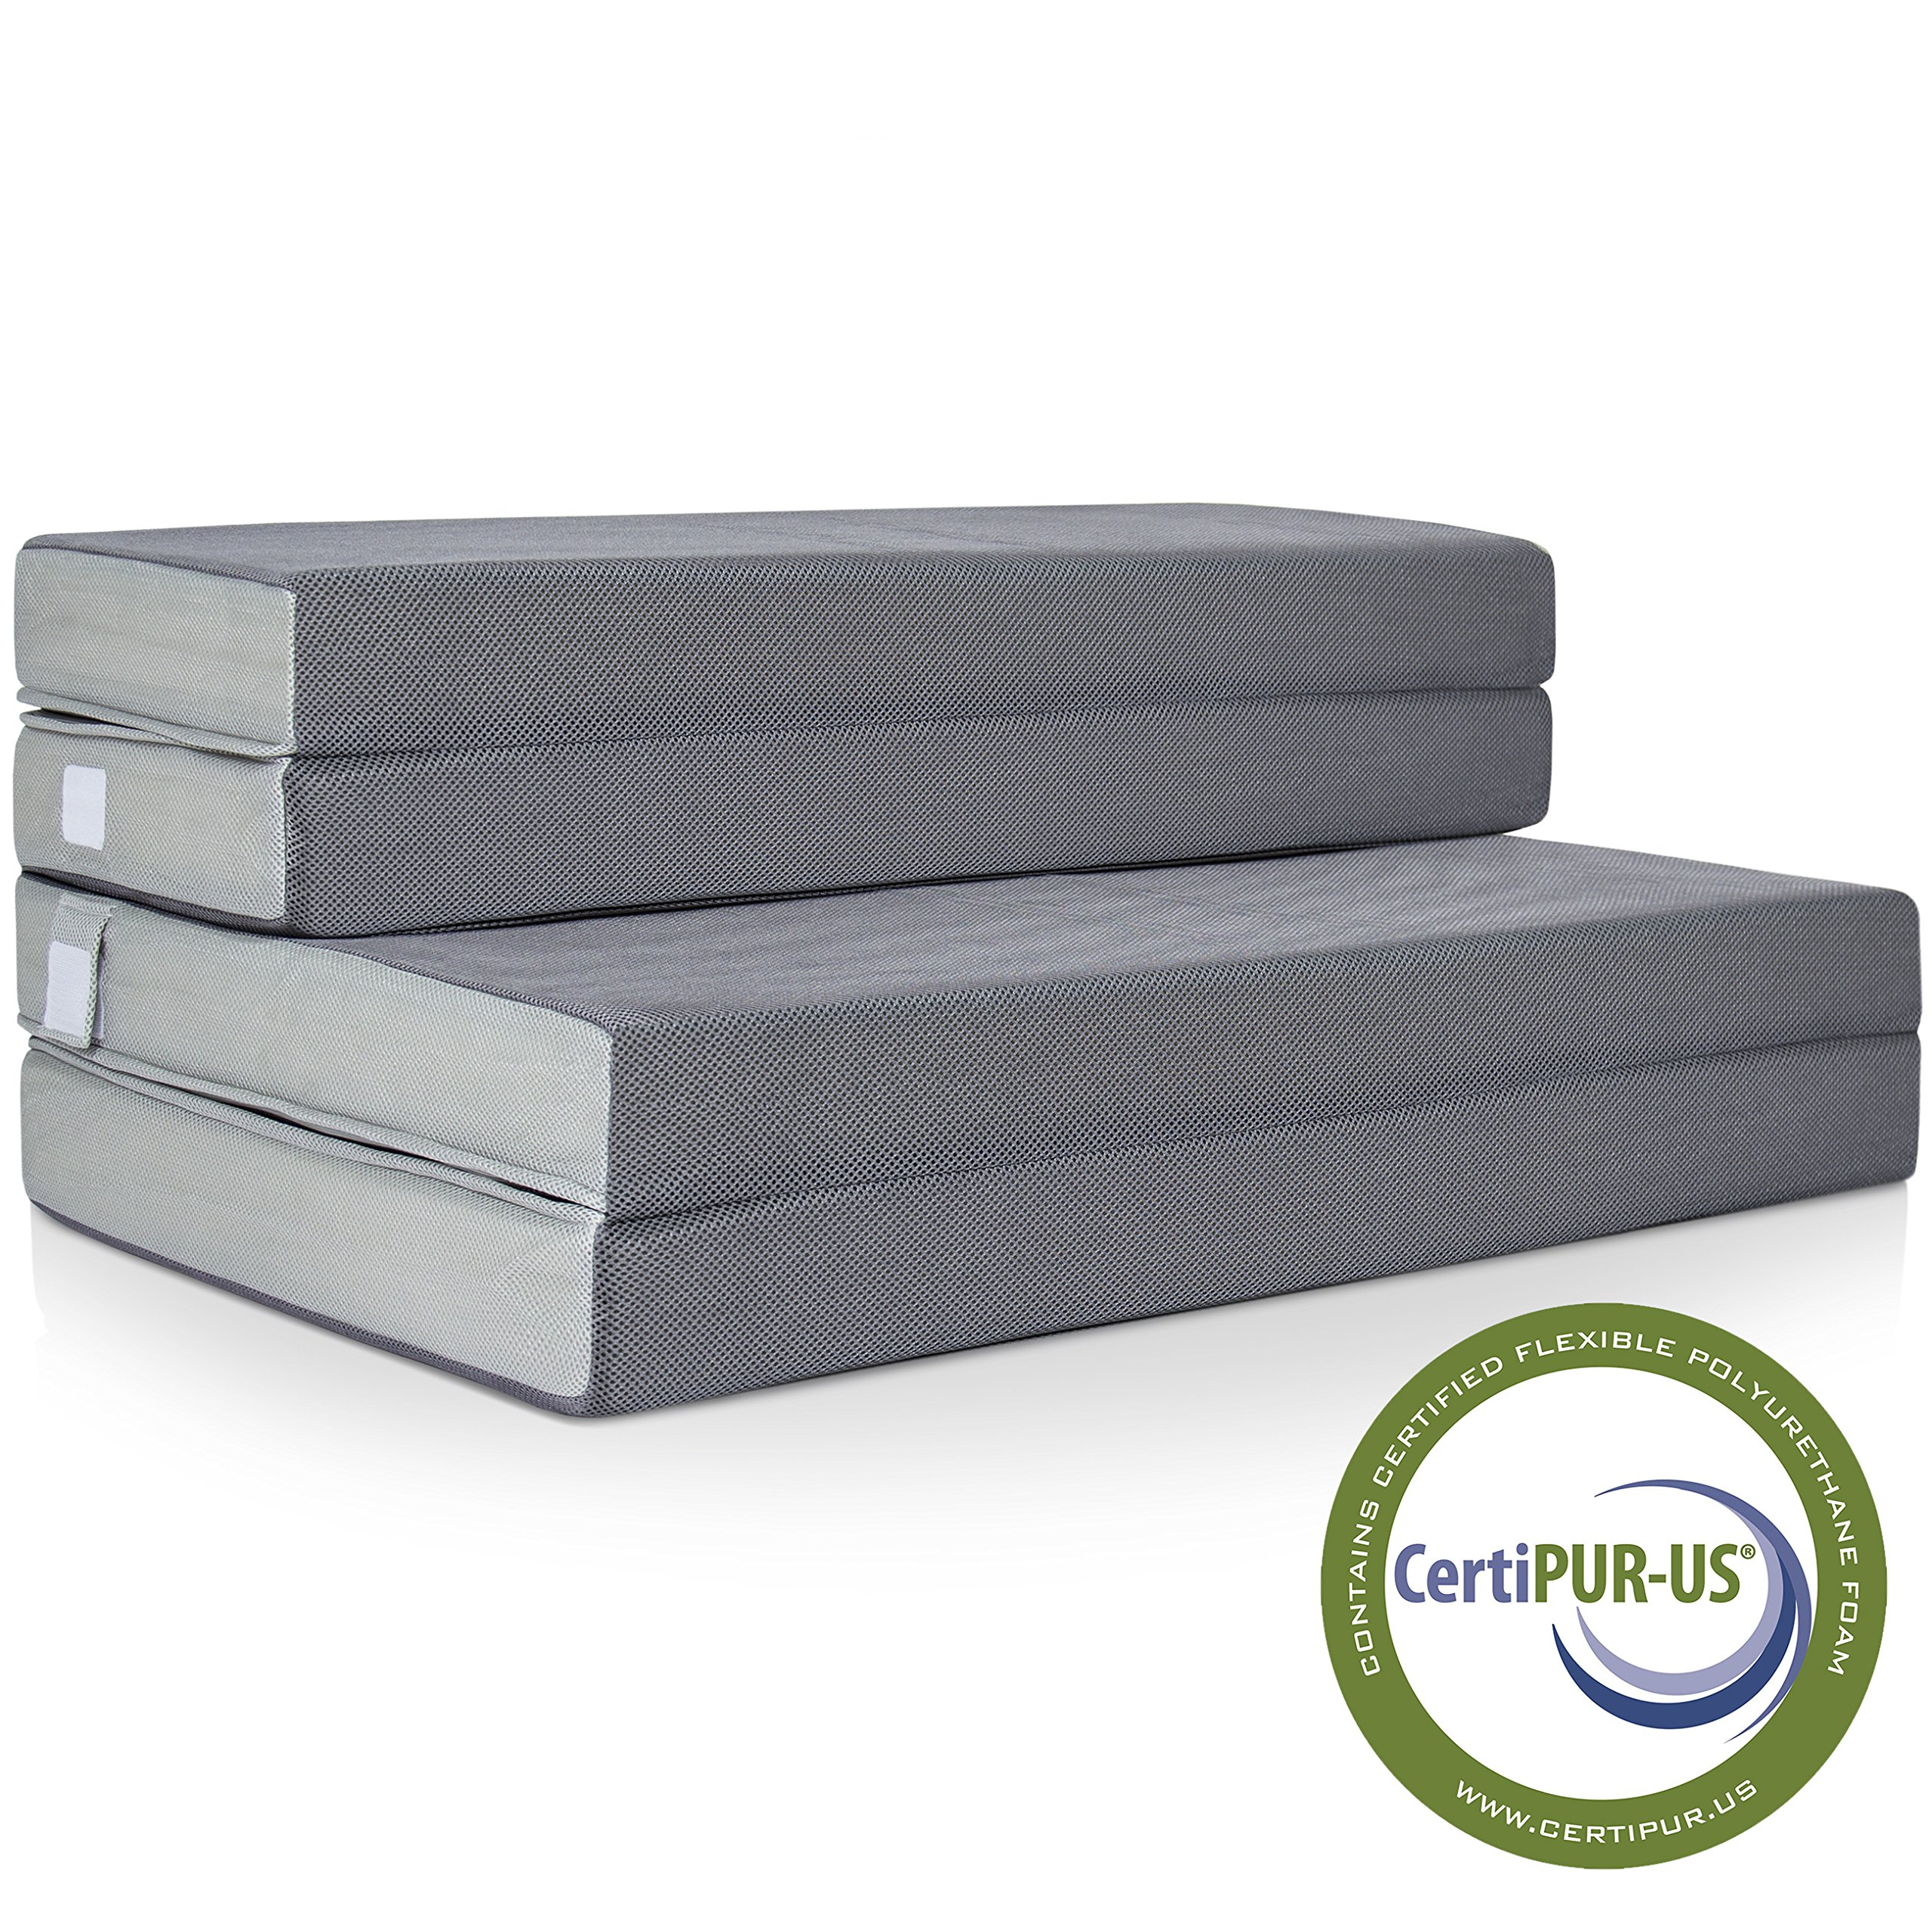 Best Choice Products 4in Thick Folding Portable Twin Mattress Topper w/High-Density Foam, Washable Cover